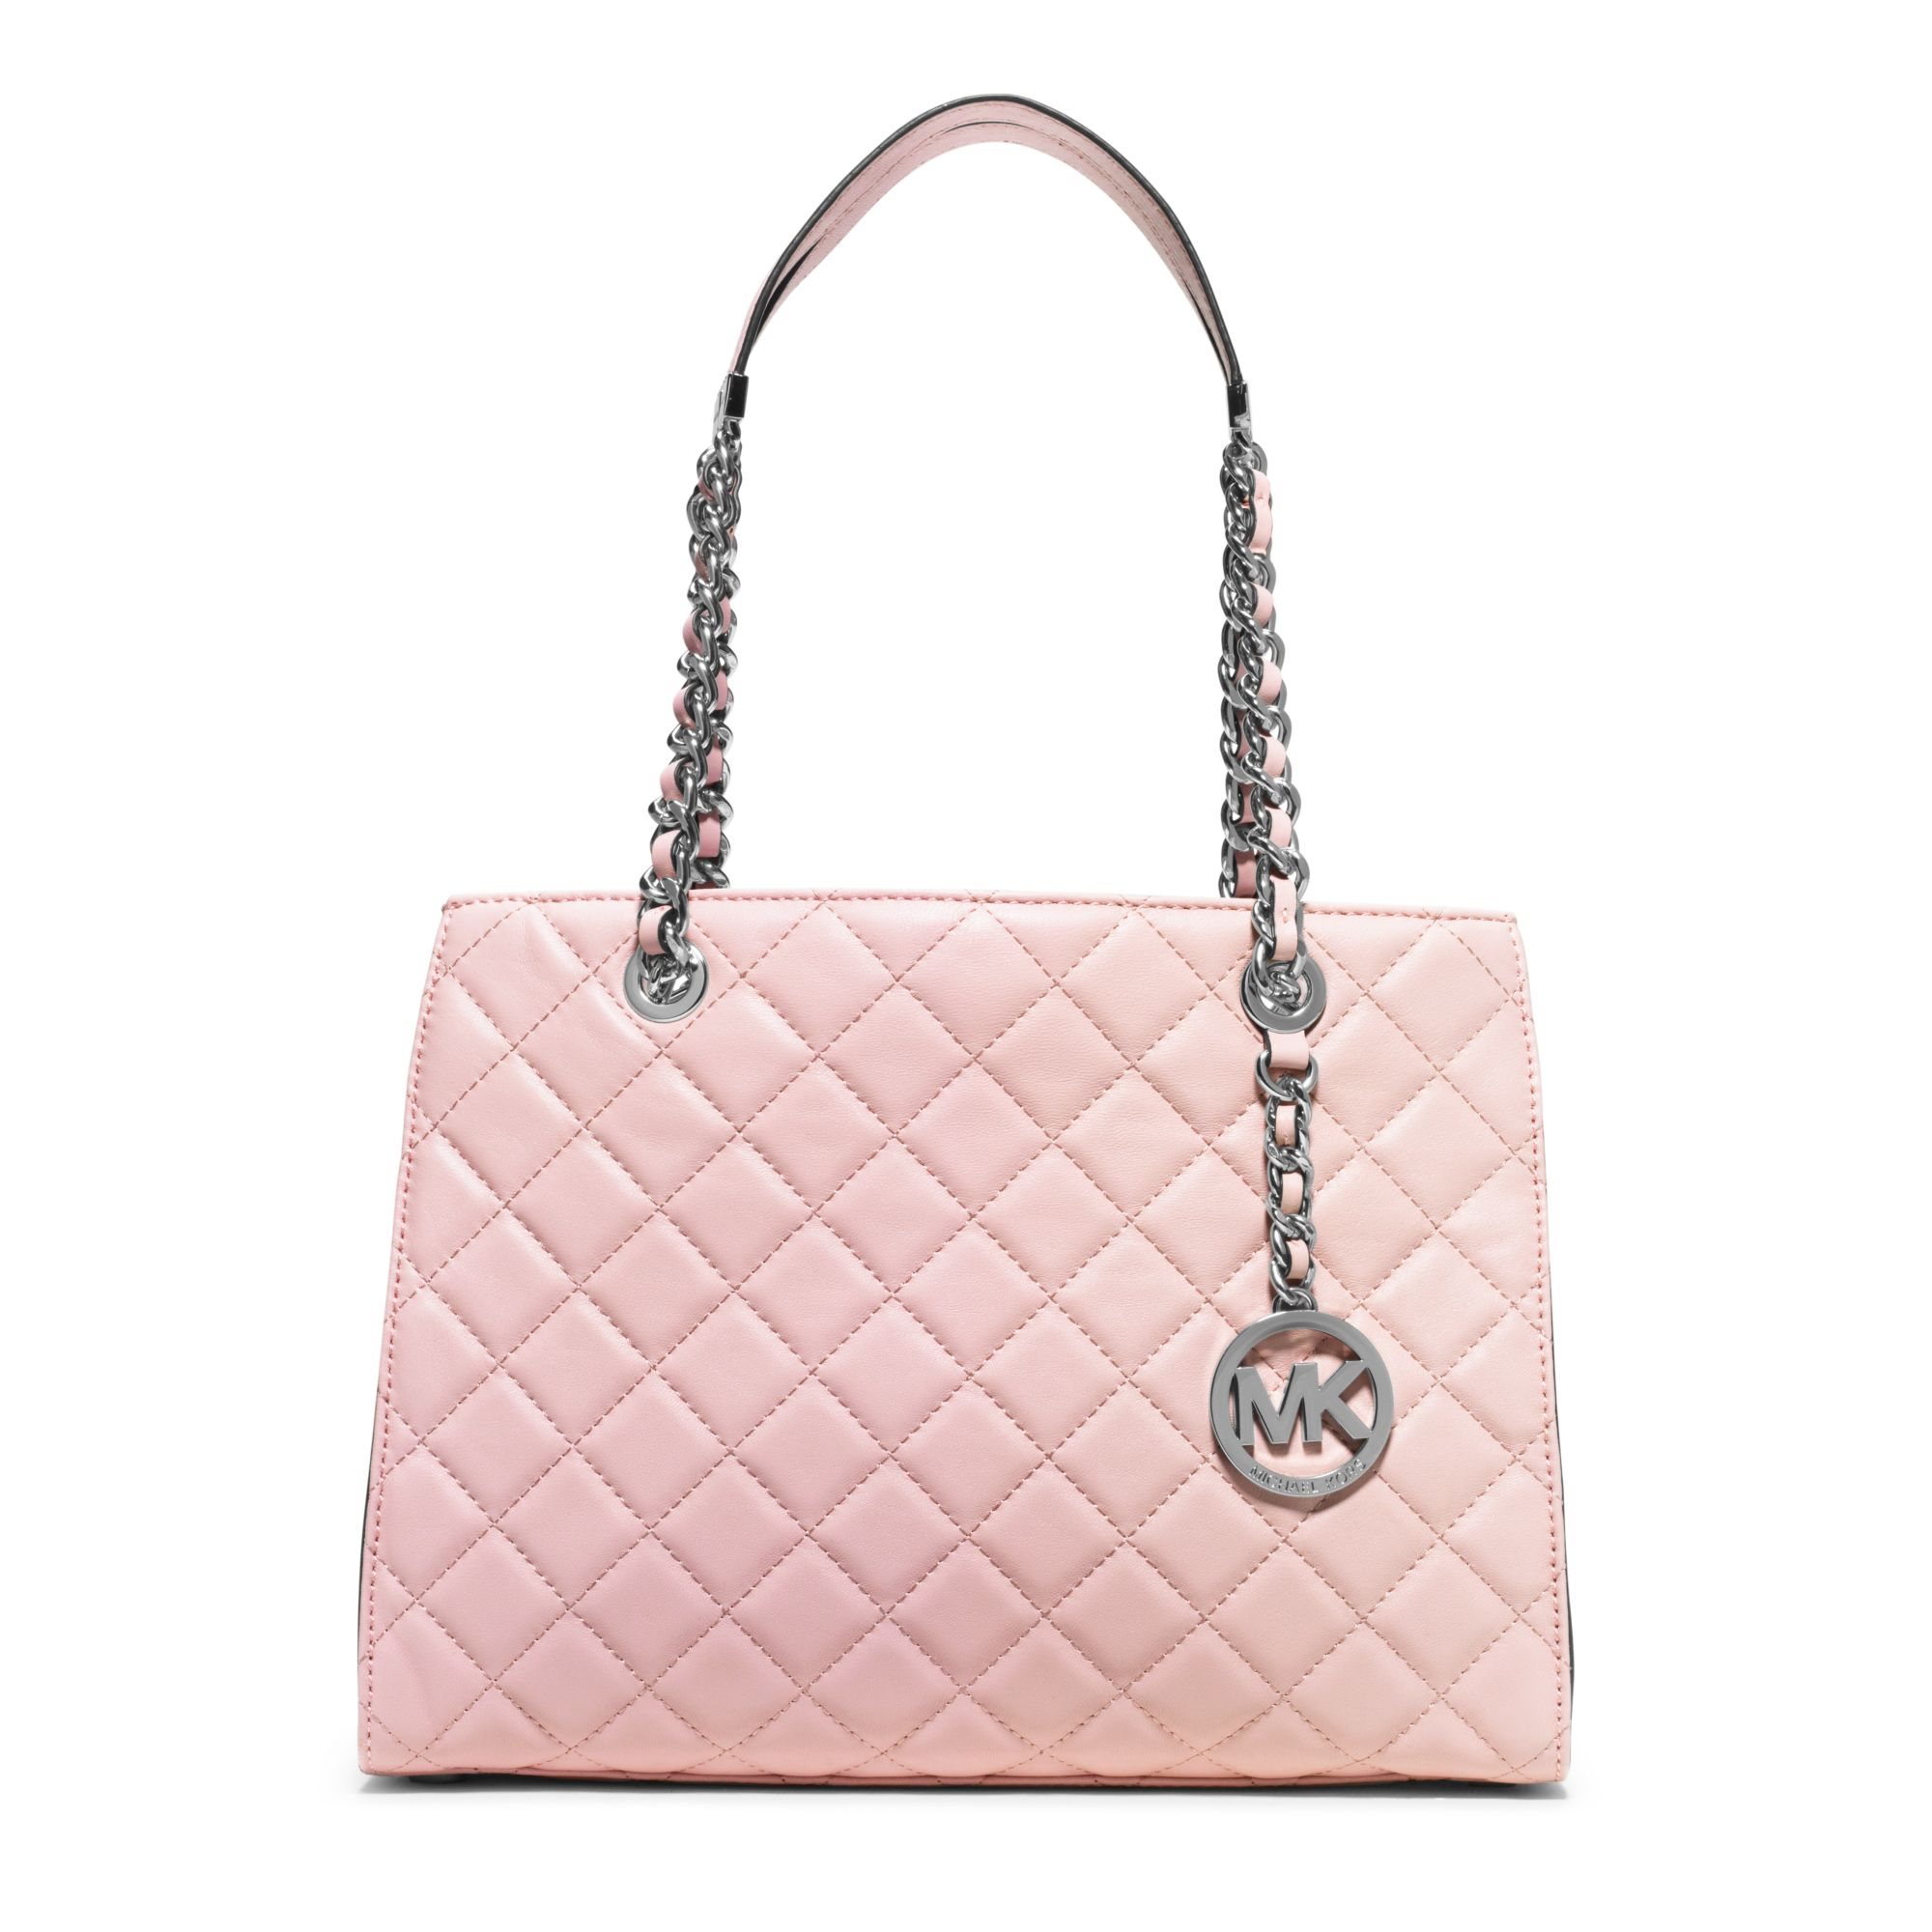 c6f47be0b3ee Lyst - Michael Kors Susannah Medium Quilted-Leather Tote in Pink